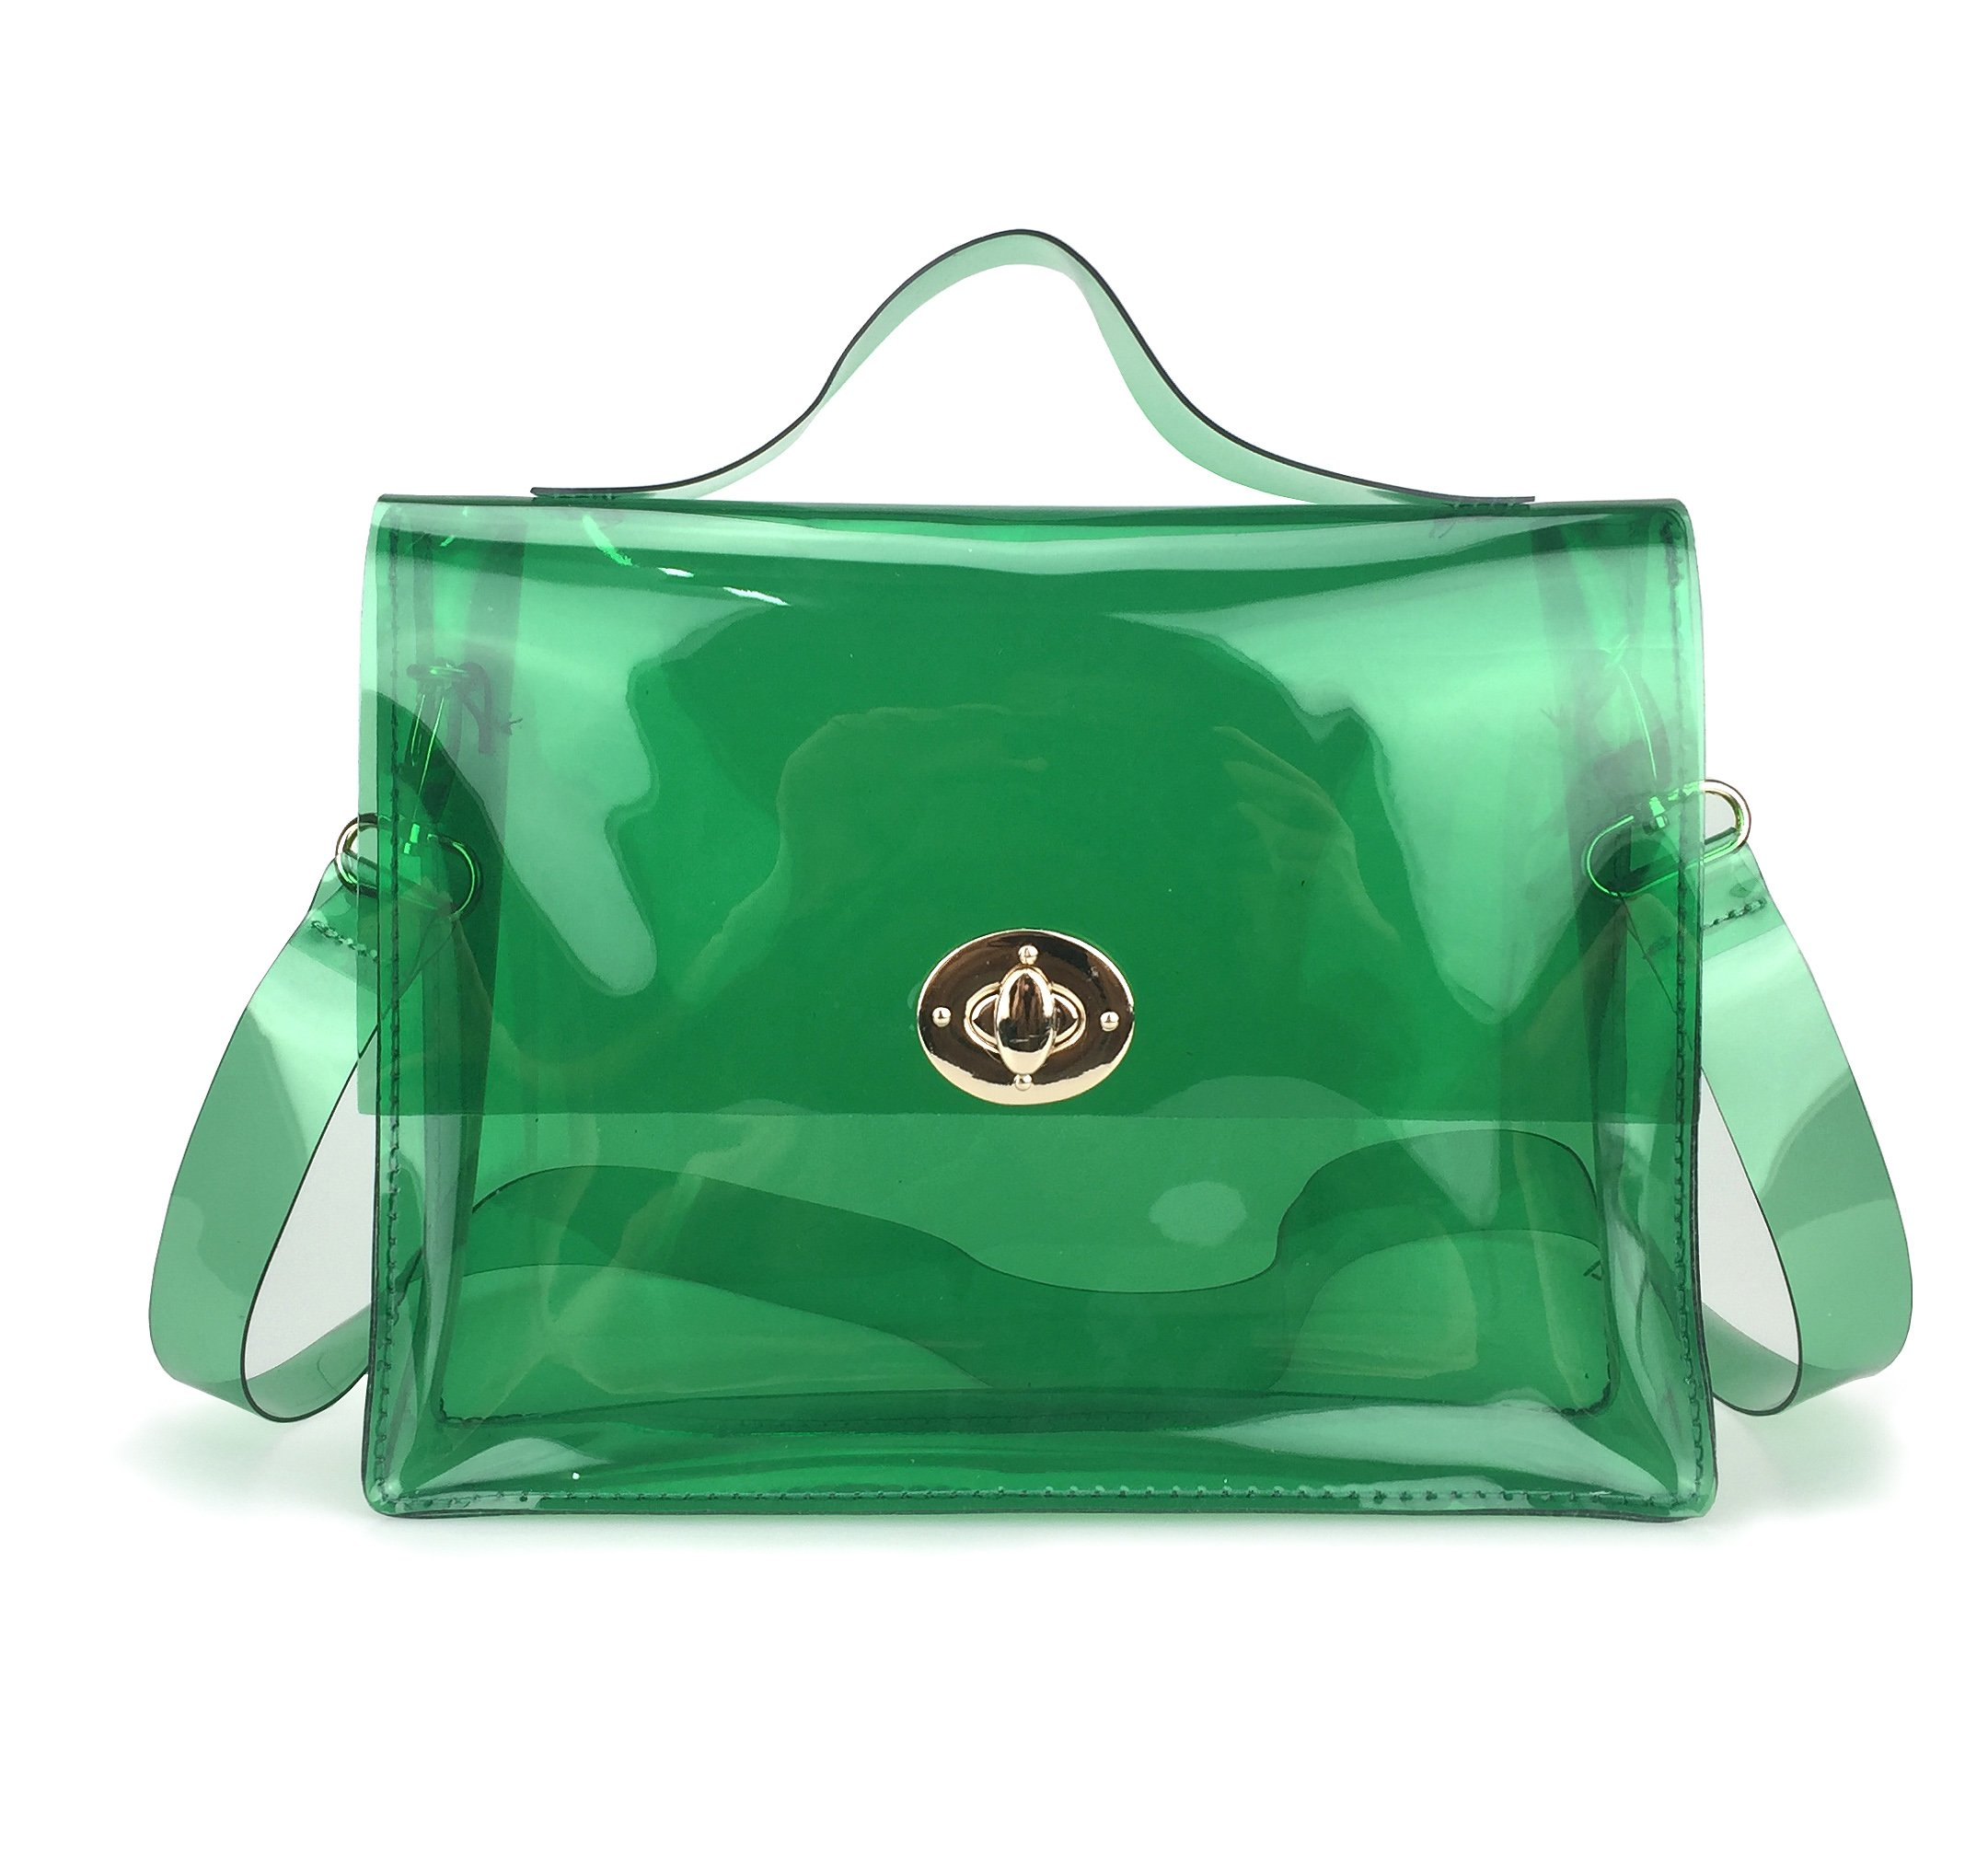 Clear Bag with Turn Lock Closure Cross Body Bag Women's Satchel Transparent Messenger Shoulder Handbag (Green) by Hoxis (Image #1)